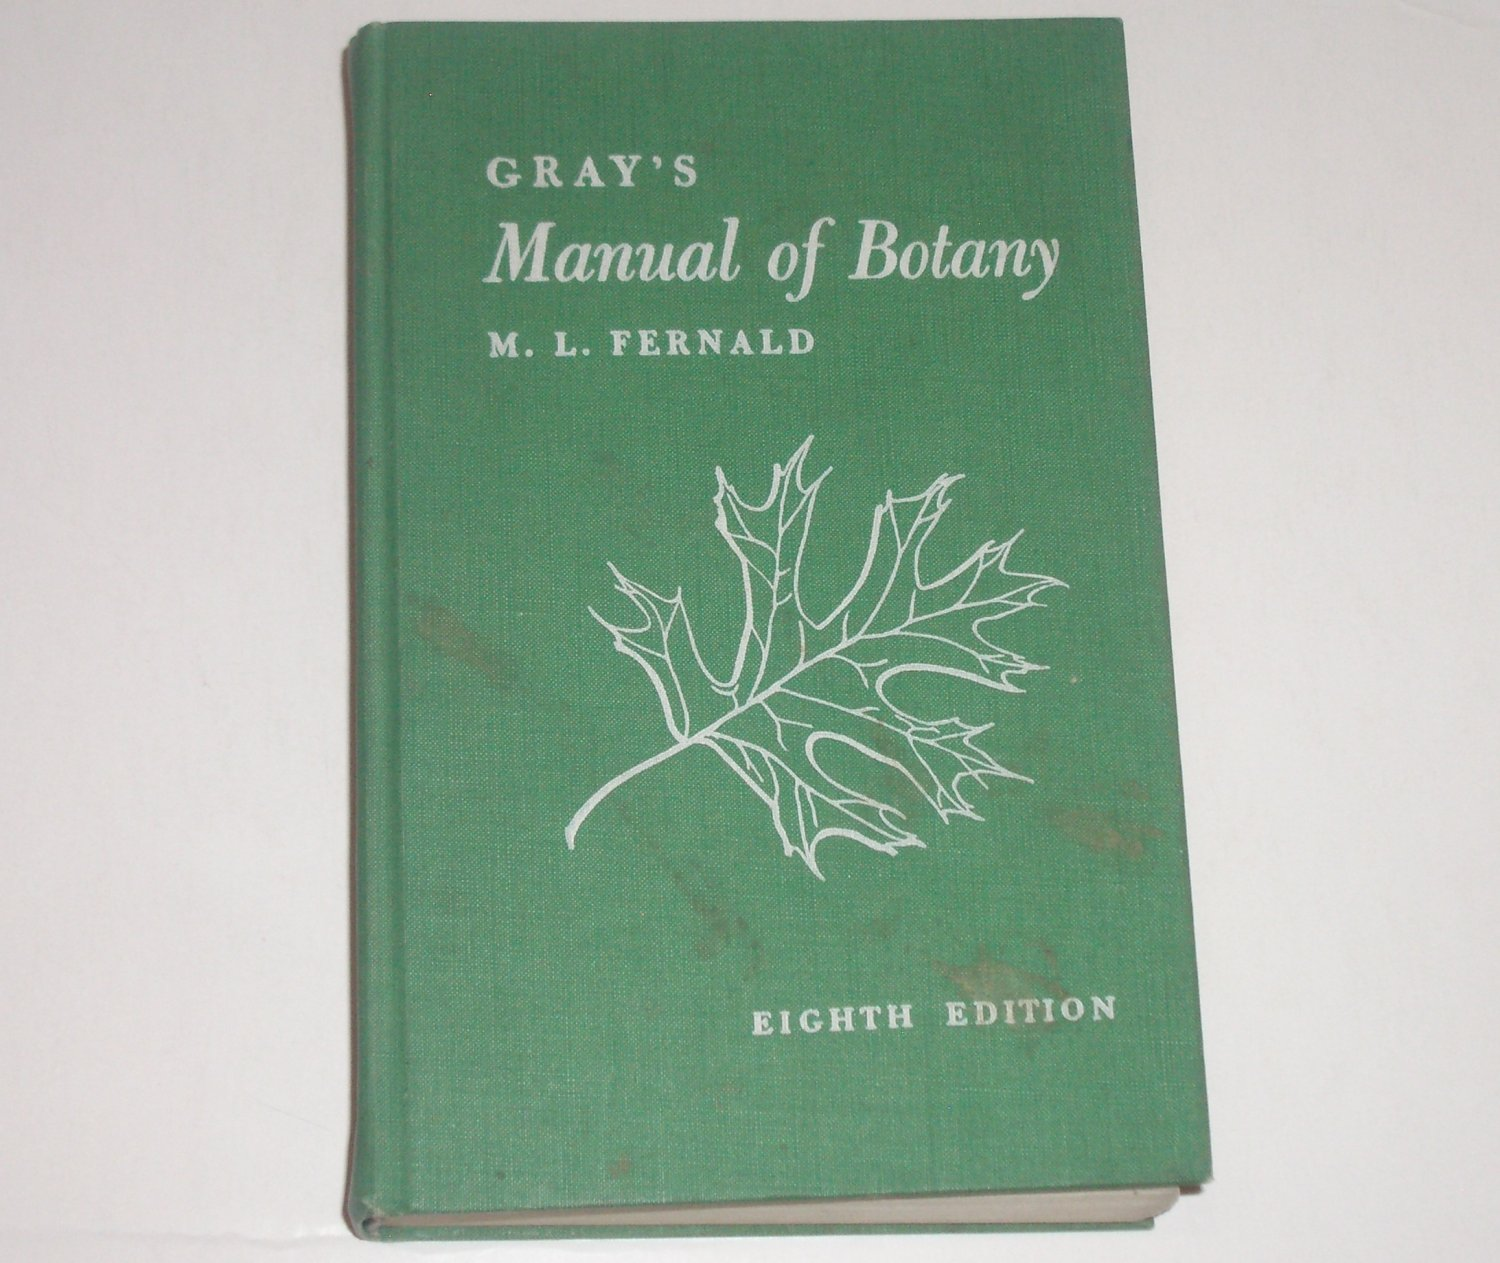 Gray's Manual of Botany by M.L. Fernald 1950 Hardcover 8th Edition